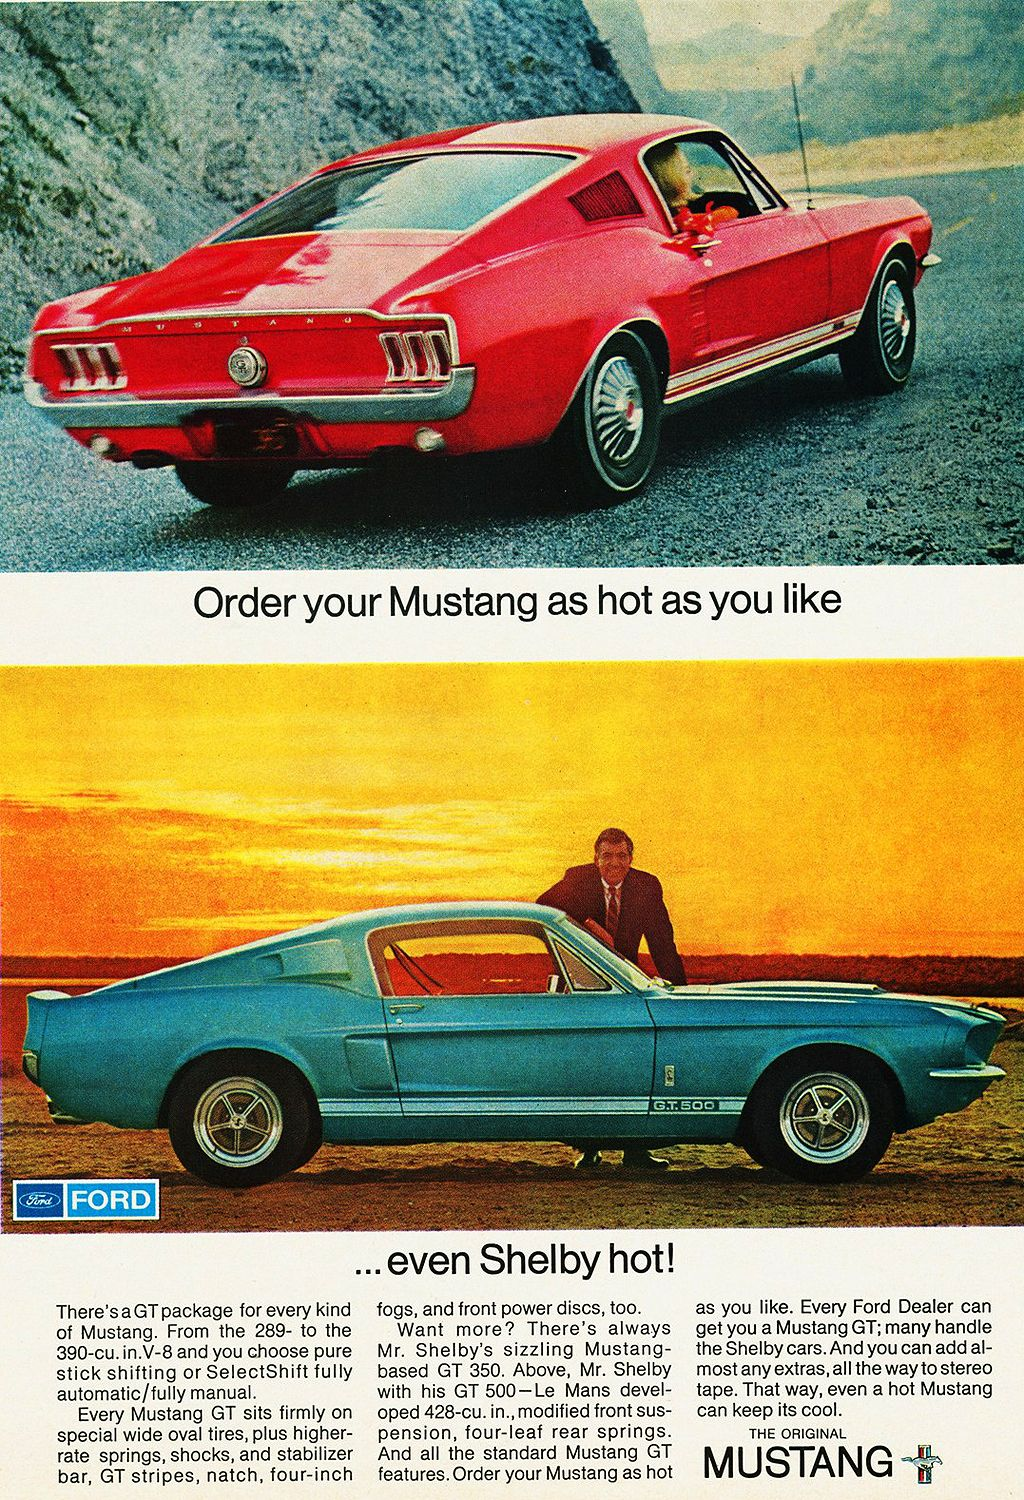 Ford-1967-Mustang-Shelby-GT500-ad.jpg (1024×1500) | Mustang classic ...